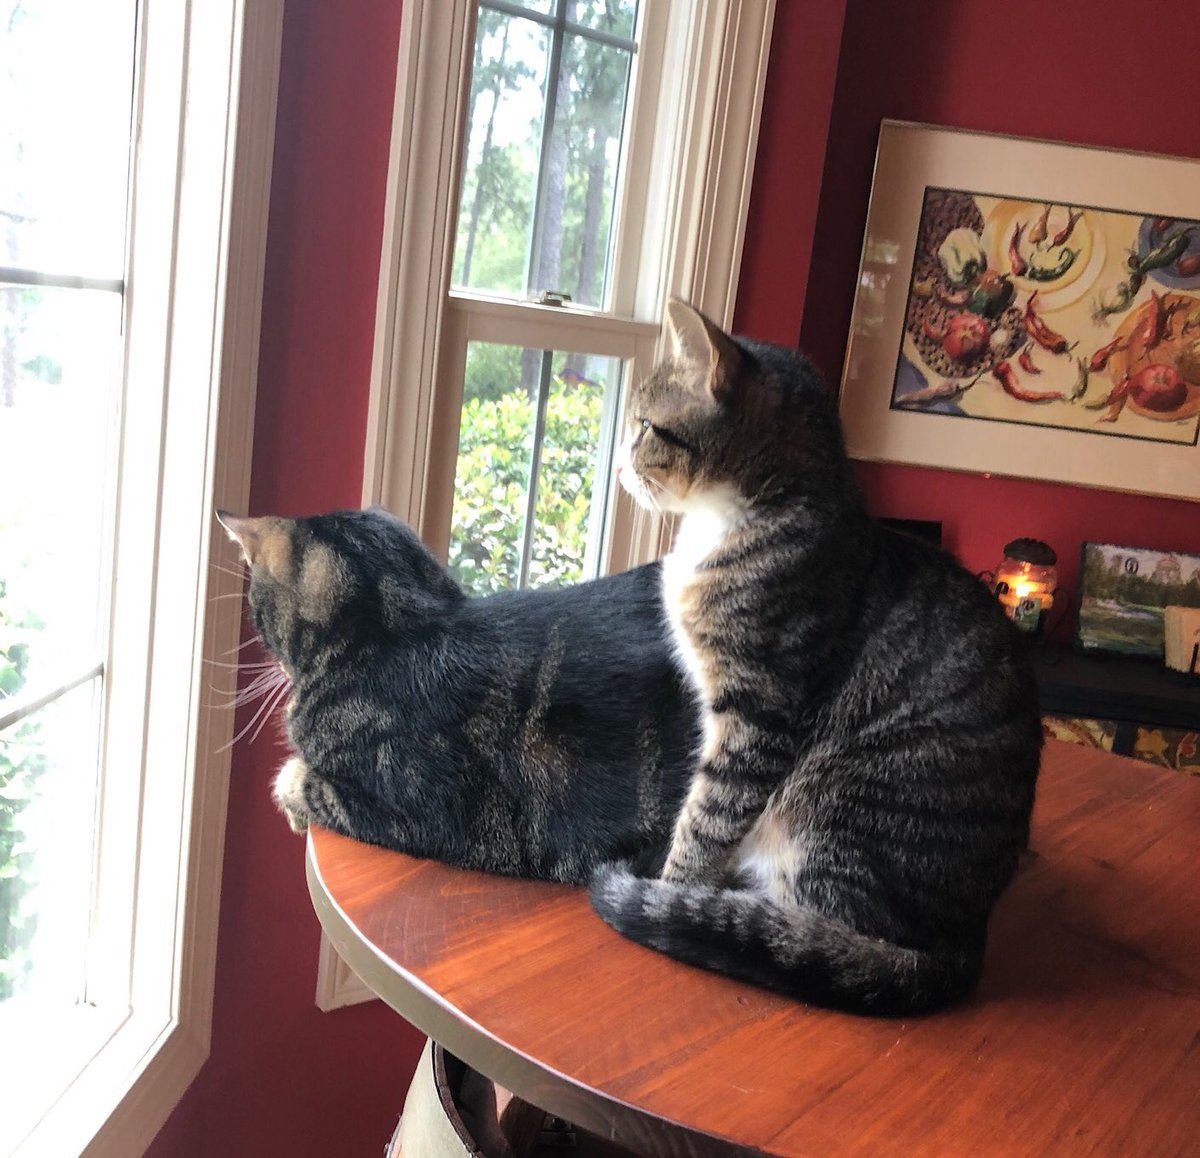 Our kitten Mulligan and Cleveland have become fast friends and enjoy watching birds and squirrels   #Caturday<br>http://pic.twitter.com/9mTzwXm3jT